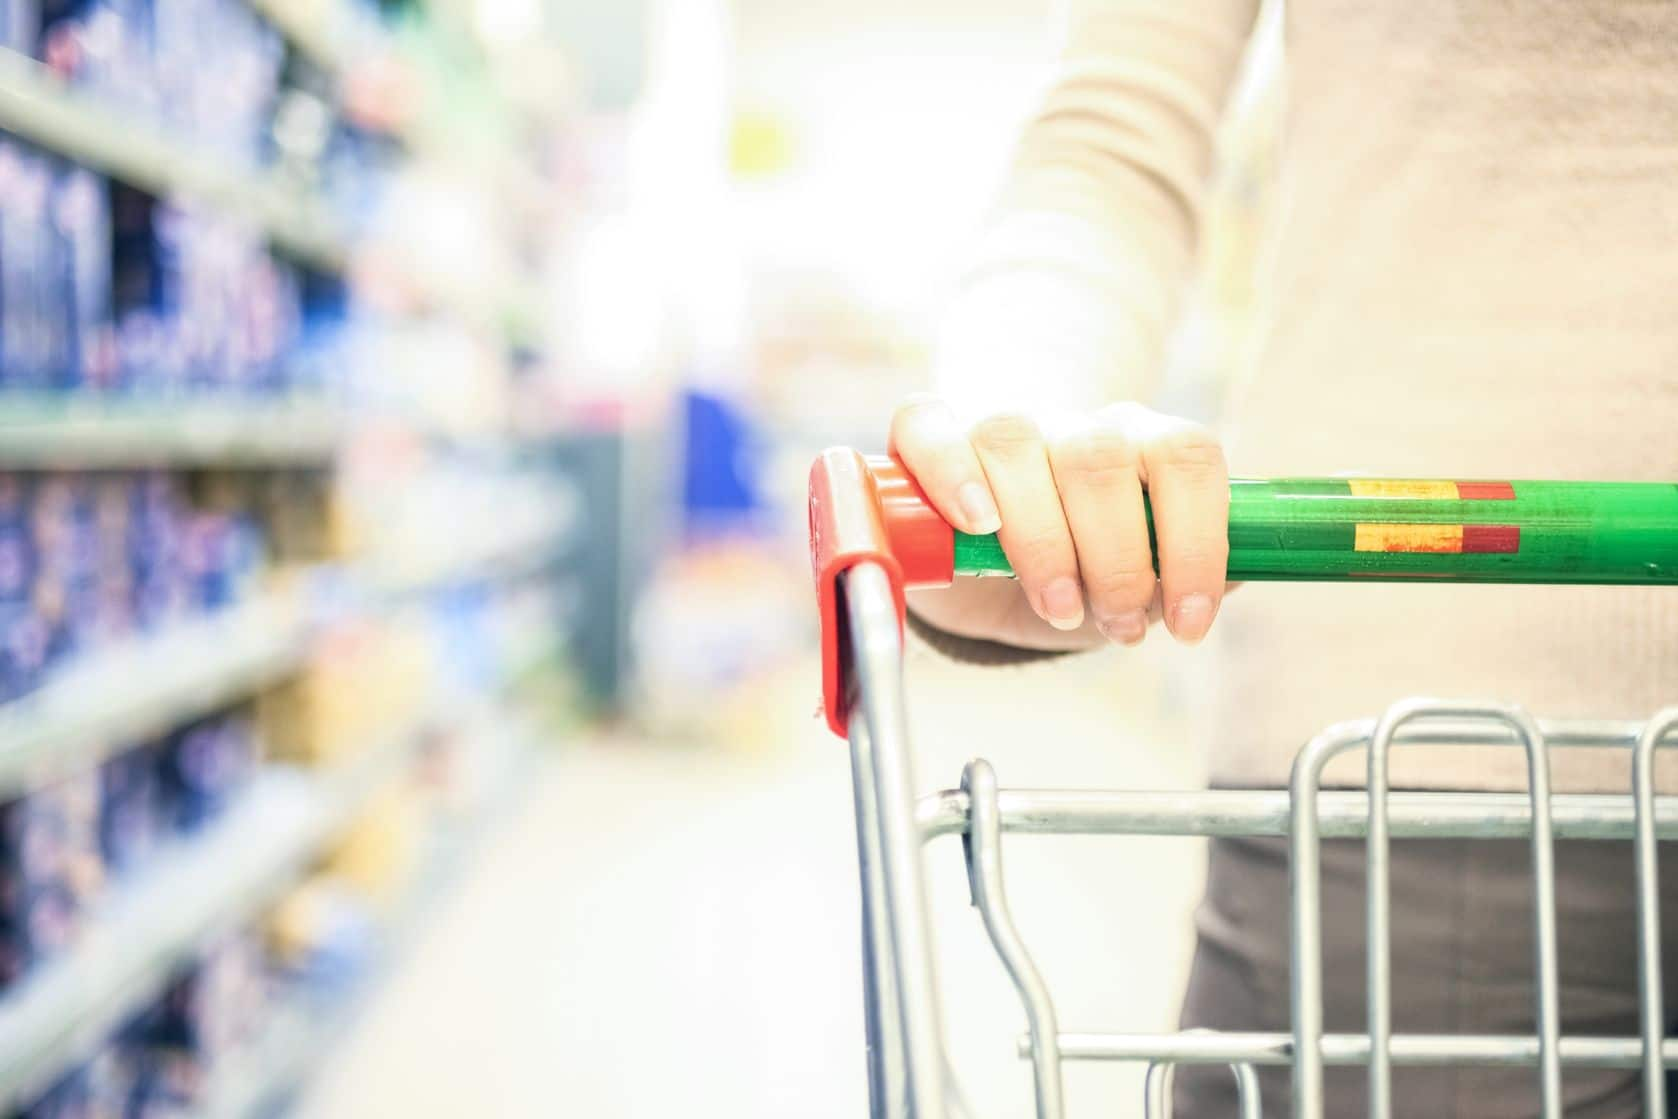 Be conscious of the tricks retail stores play on you as you walk through the aisles.